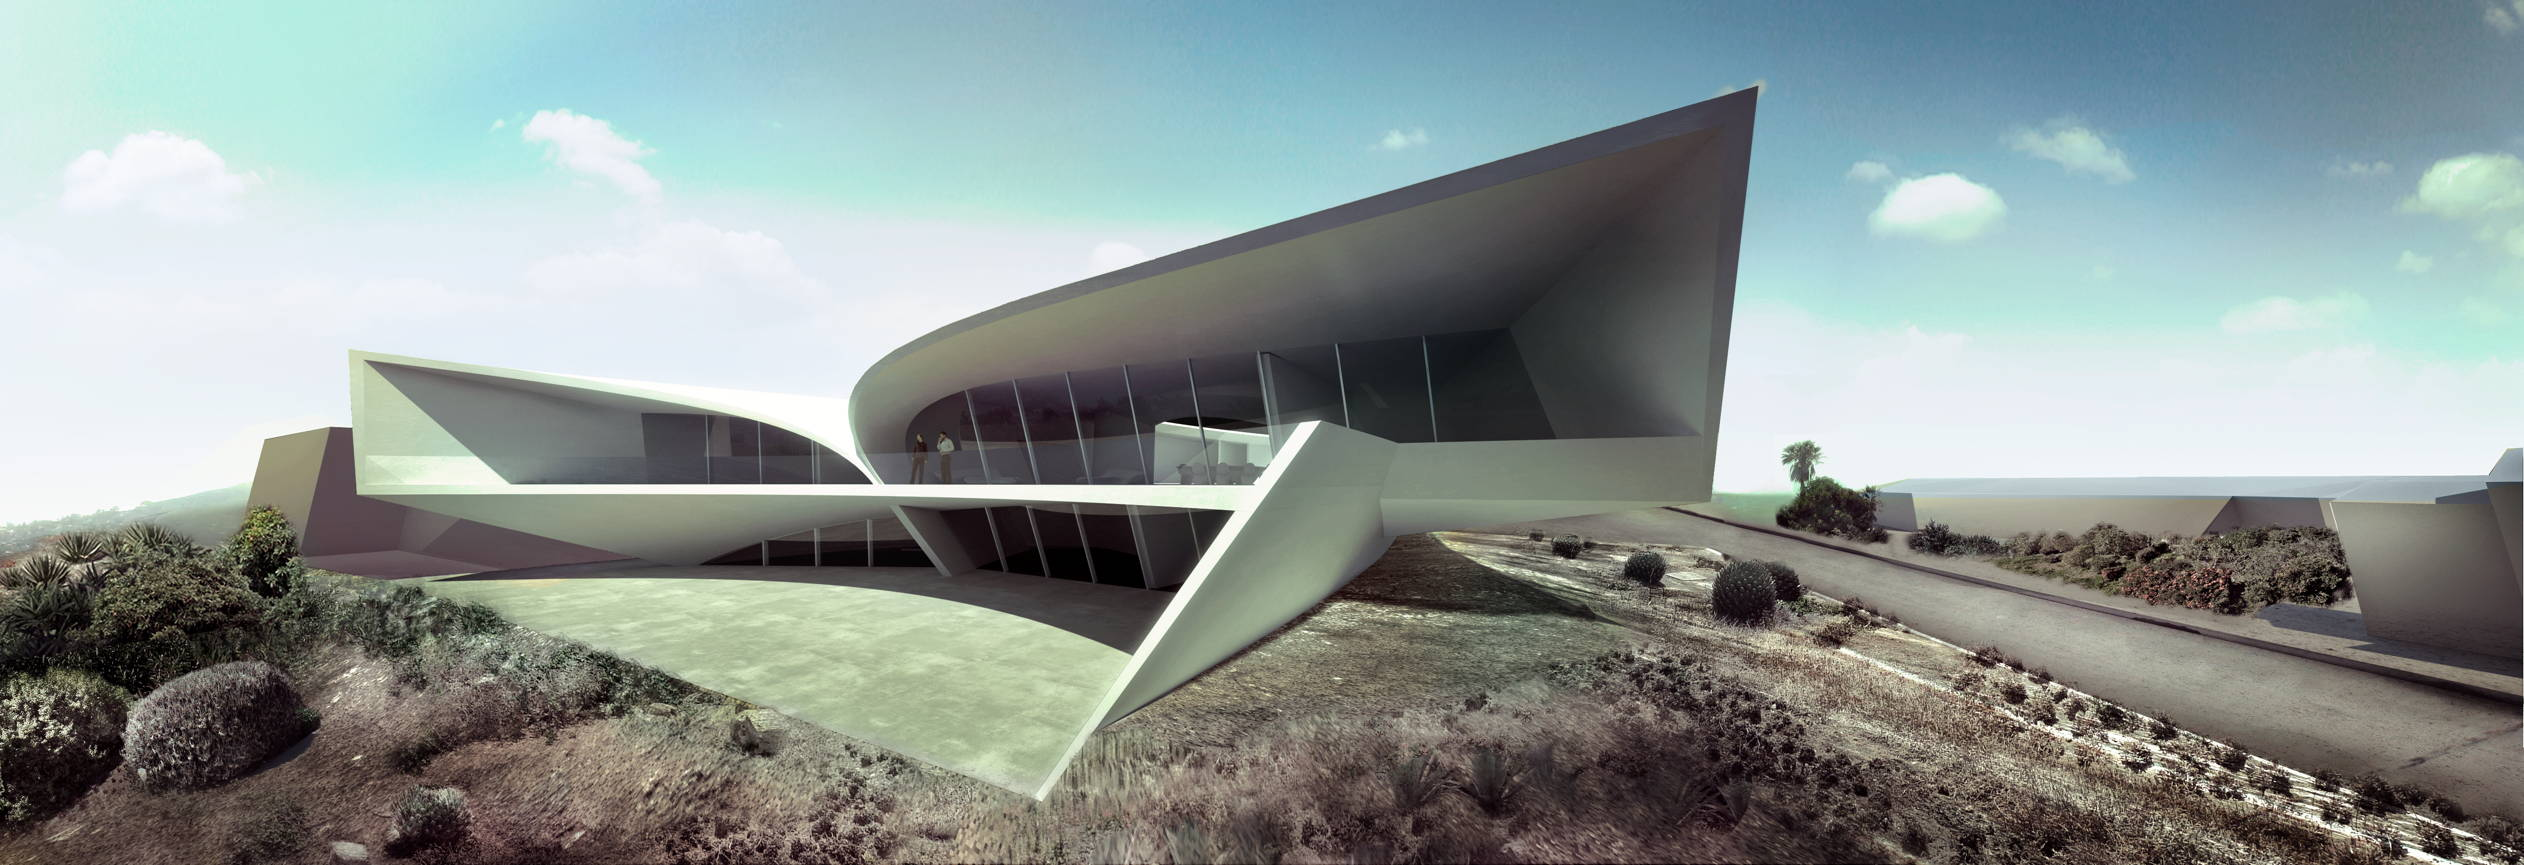 California residence in san diego by zaha hadid architects for Architecture zaha hadid